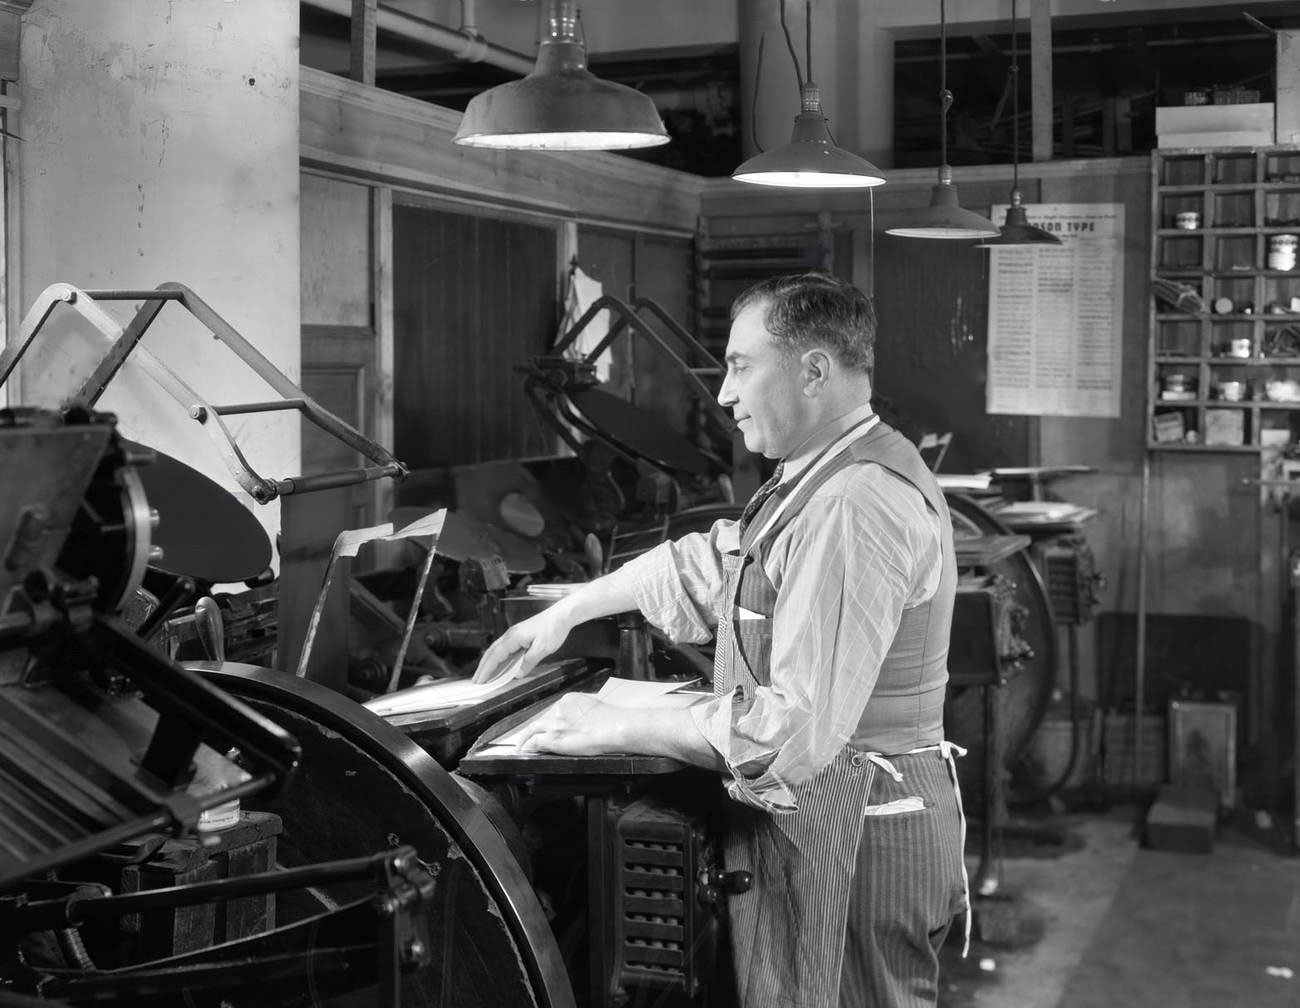 1930s 1940s smiling man worker in print shop hand feeding paper sheet CTG1FM 1 11